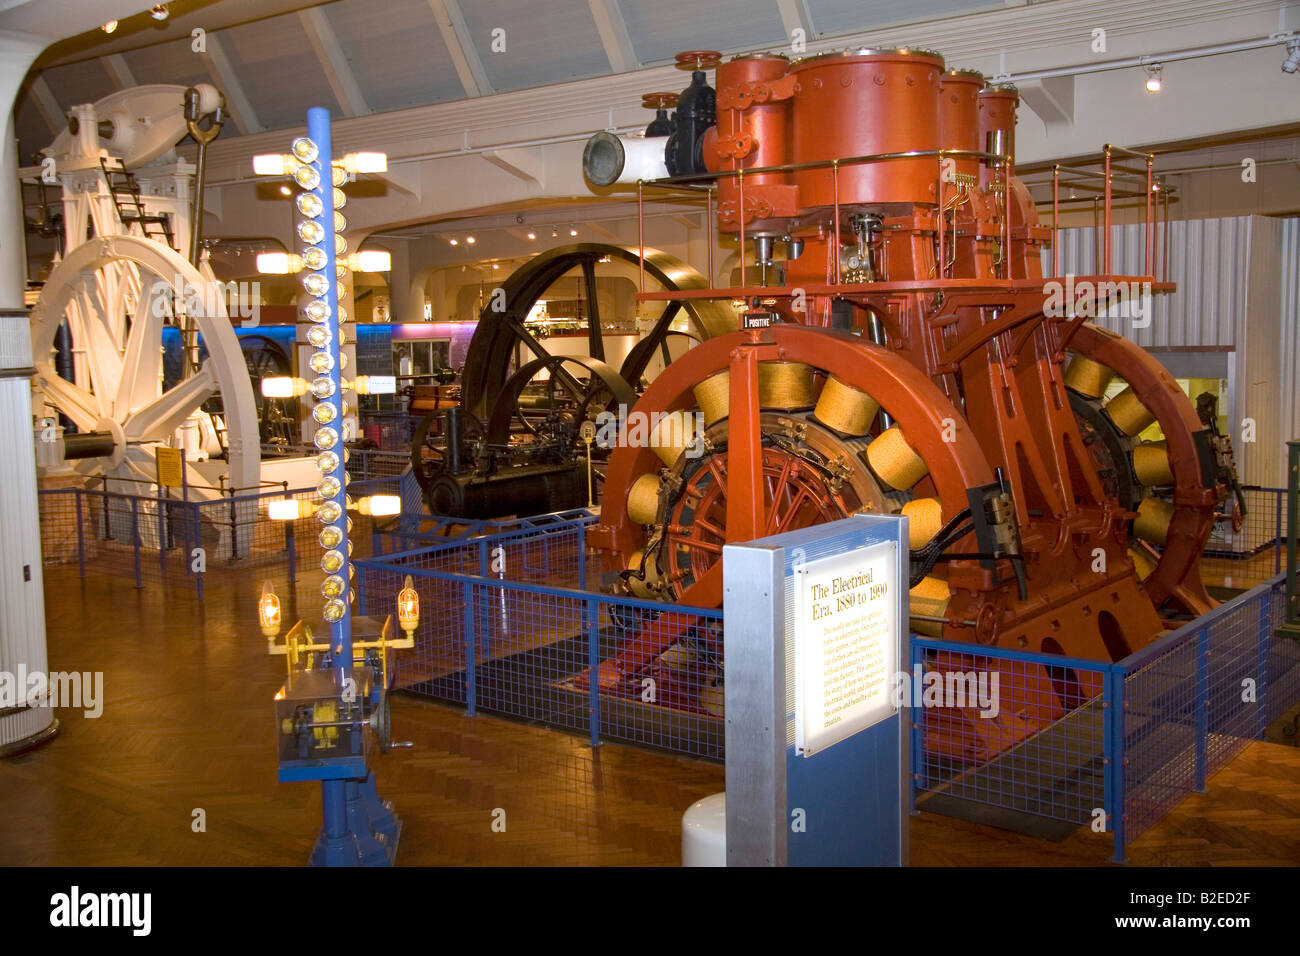 History of industrial electricity use and generation in America at the Henry Ford Museum at Dearborn Michigan - Stock Image